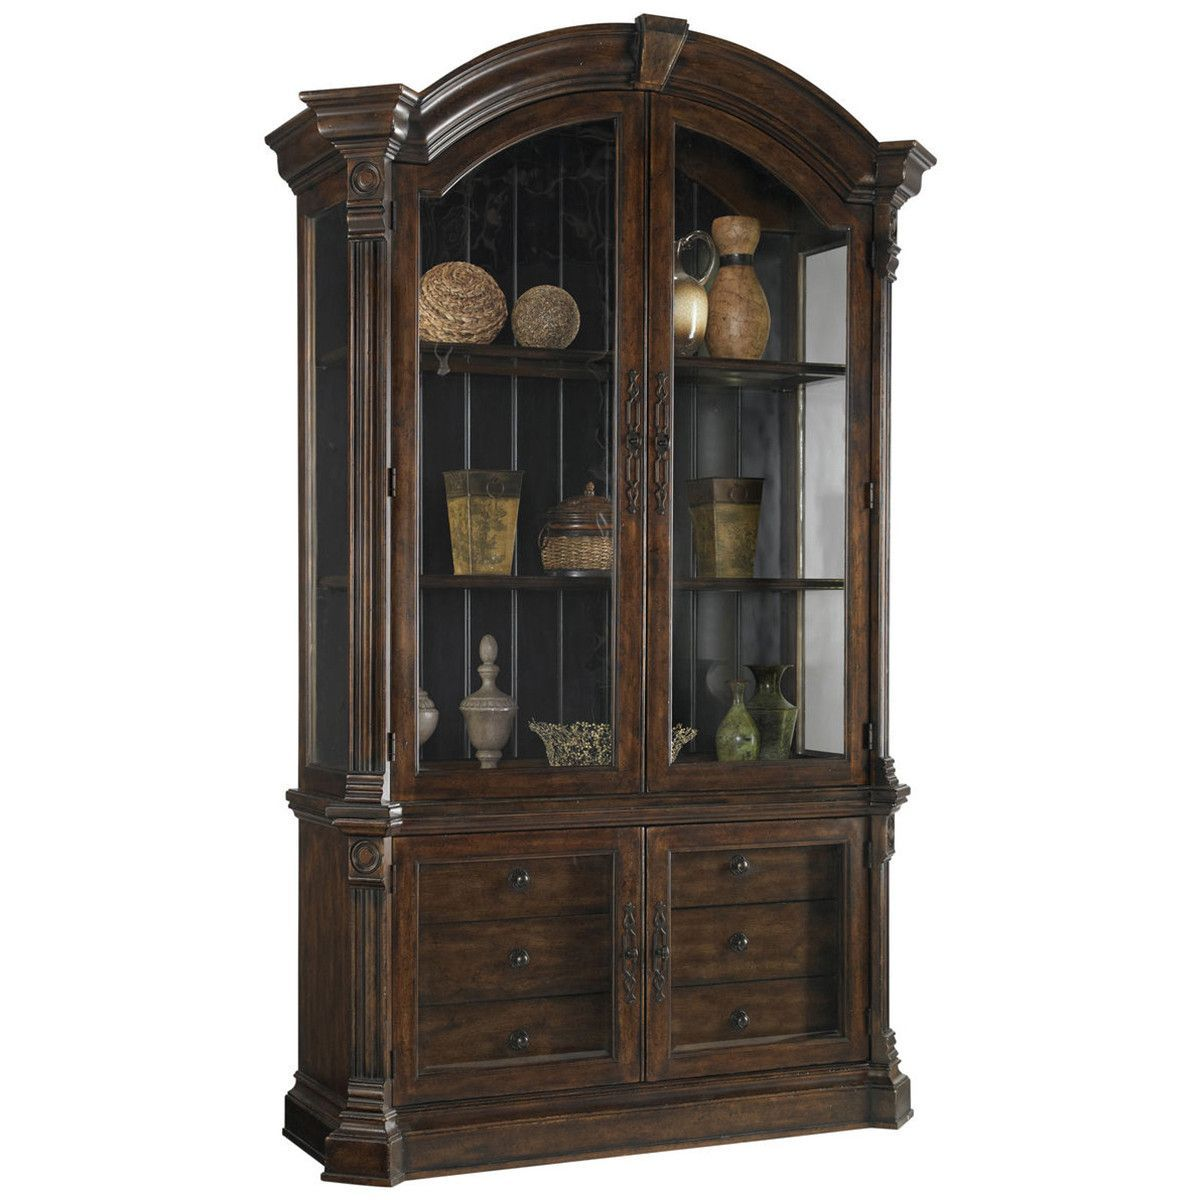 Art furniture whiskey oak display china decor